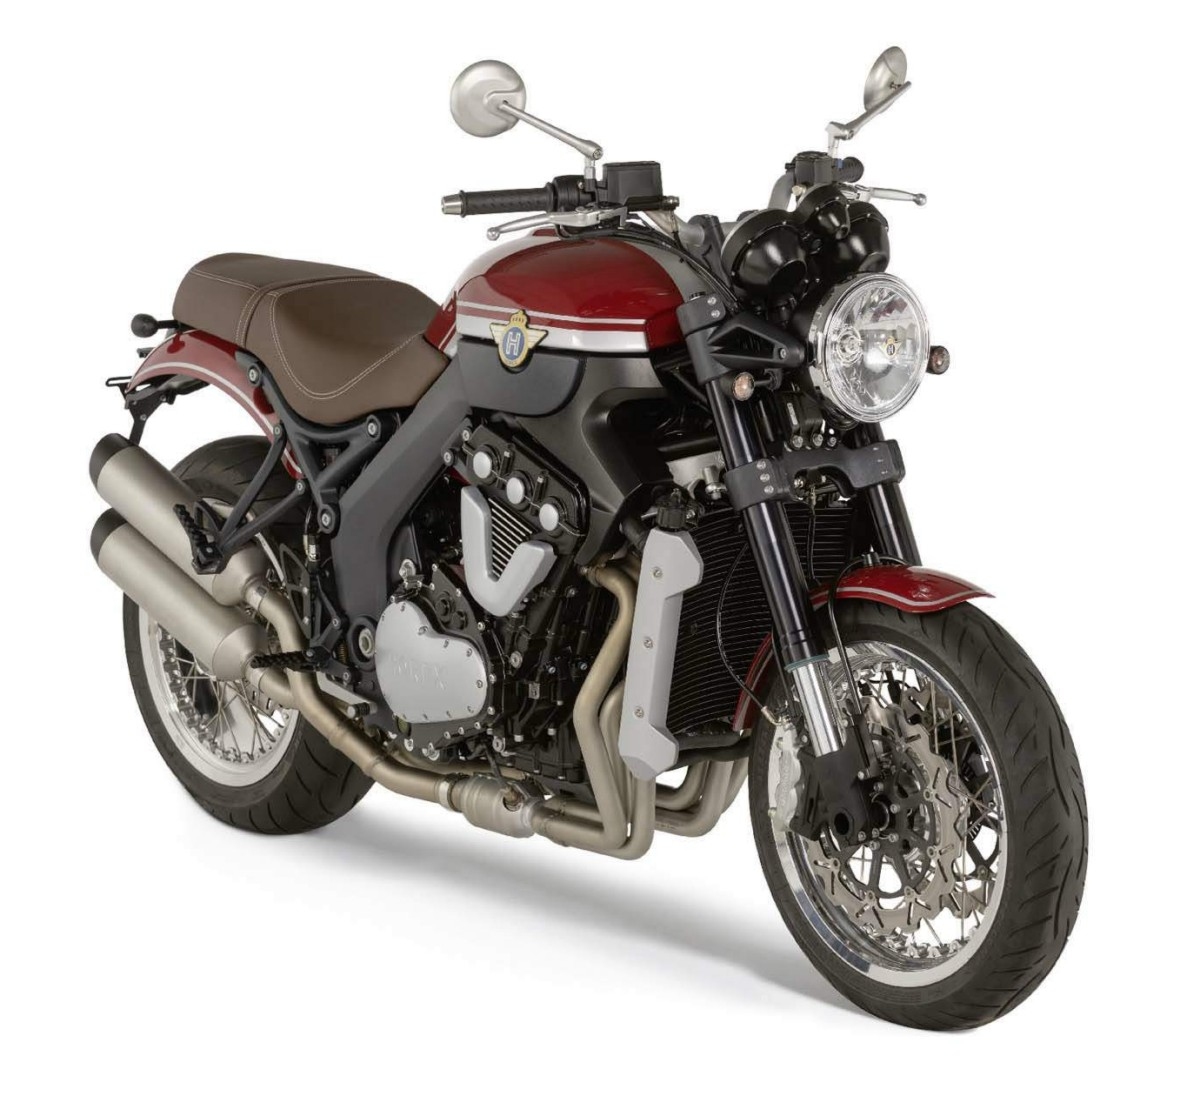 Horex VR6 Classic technical specifications